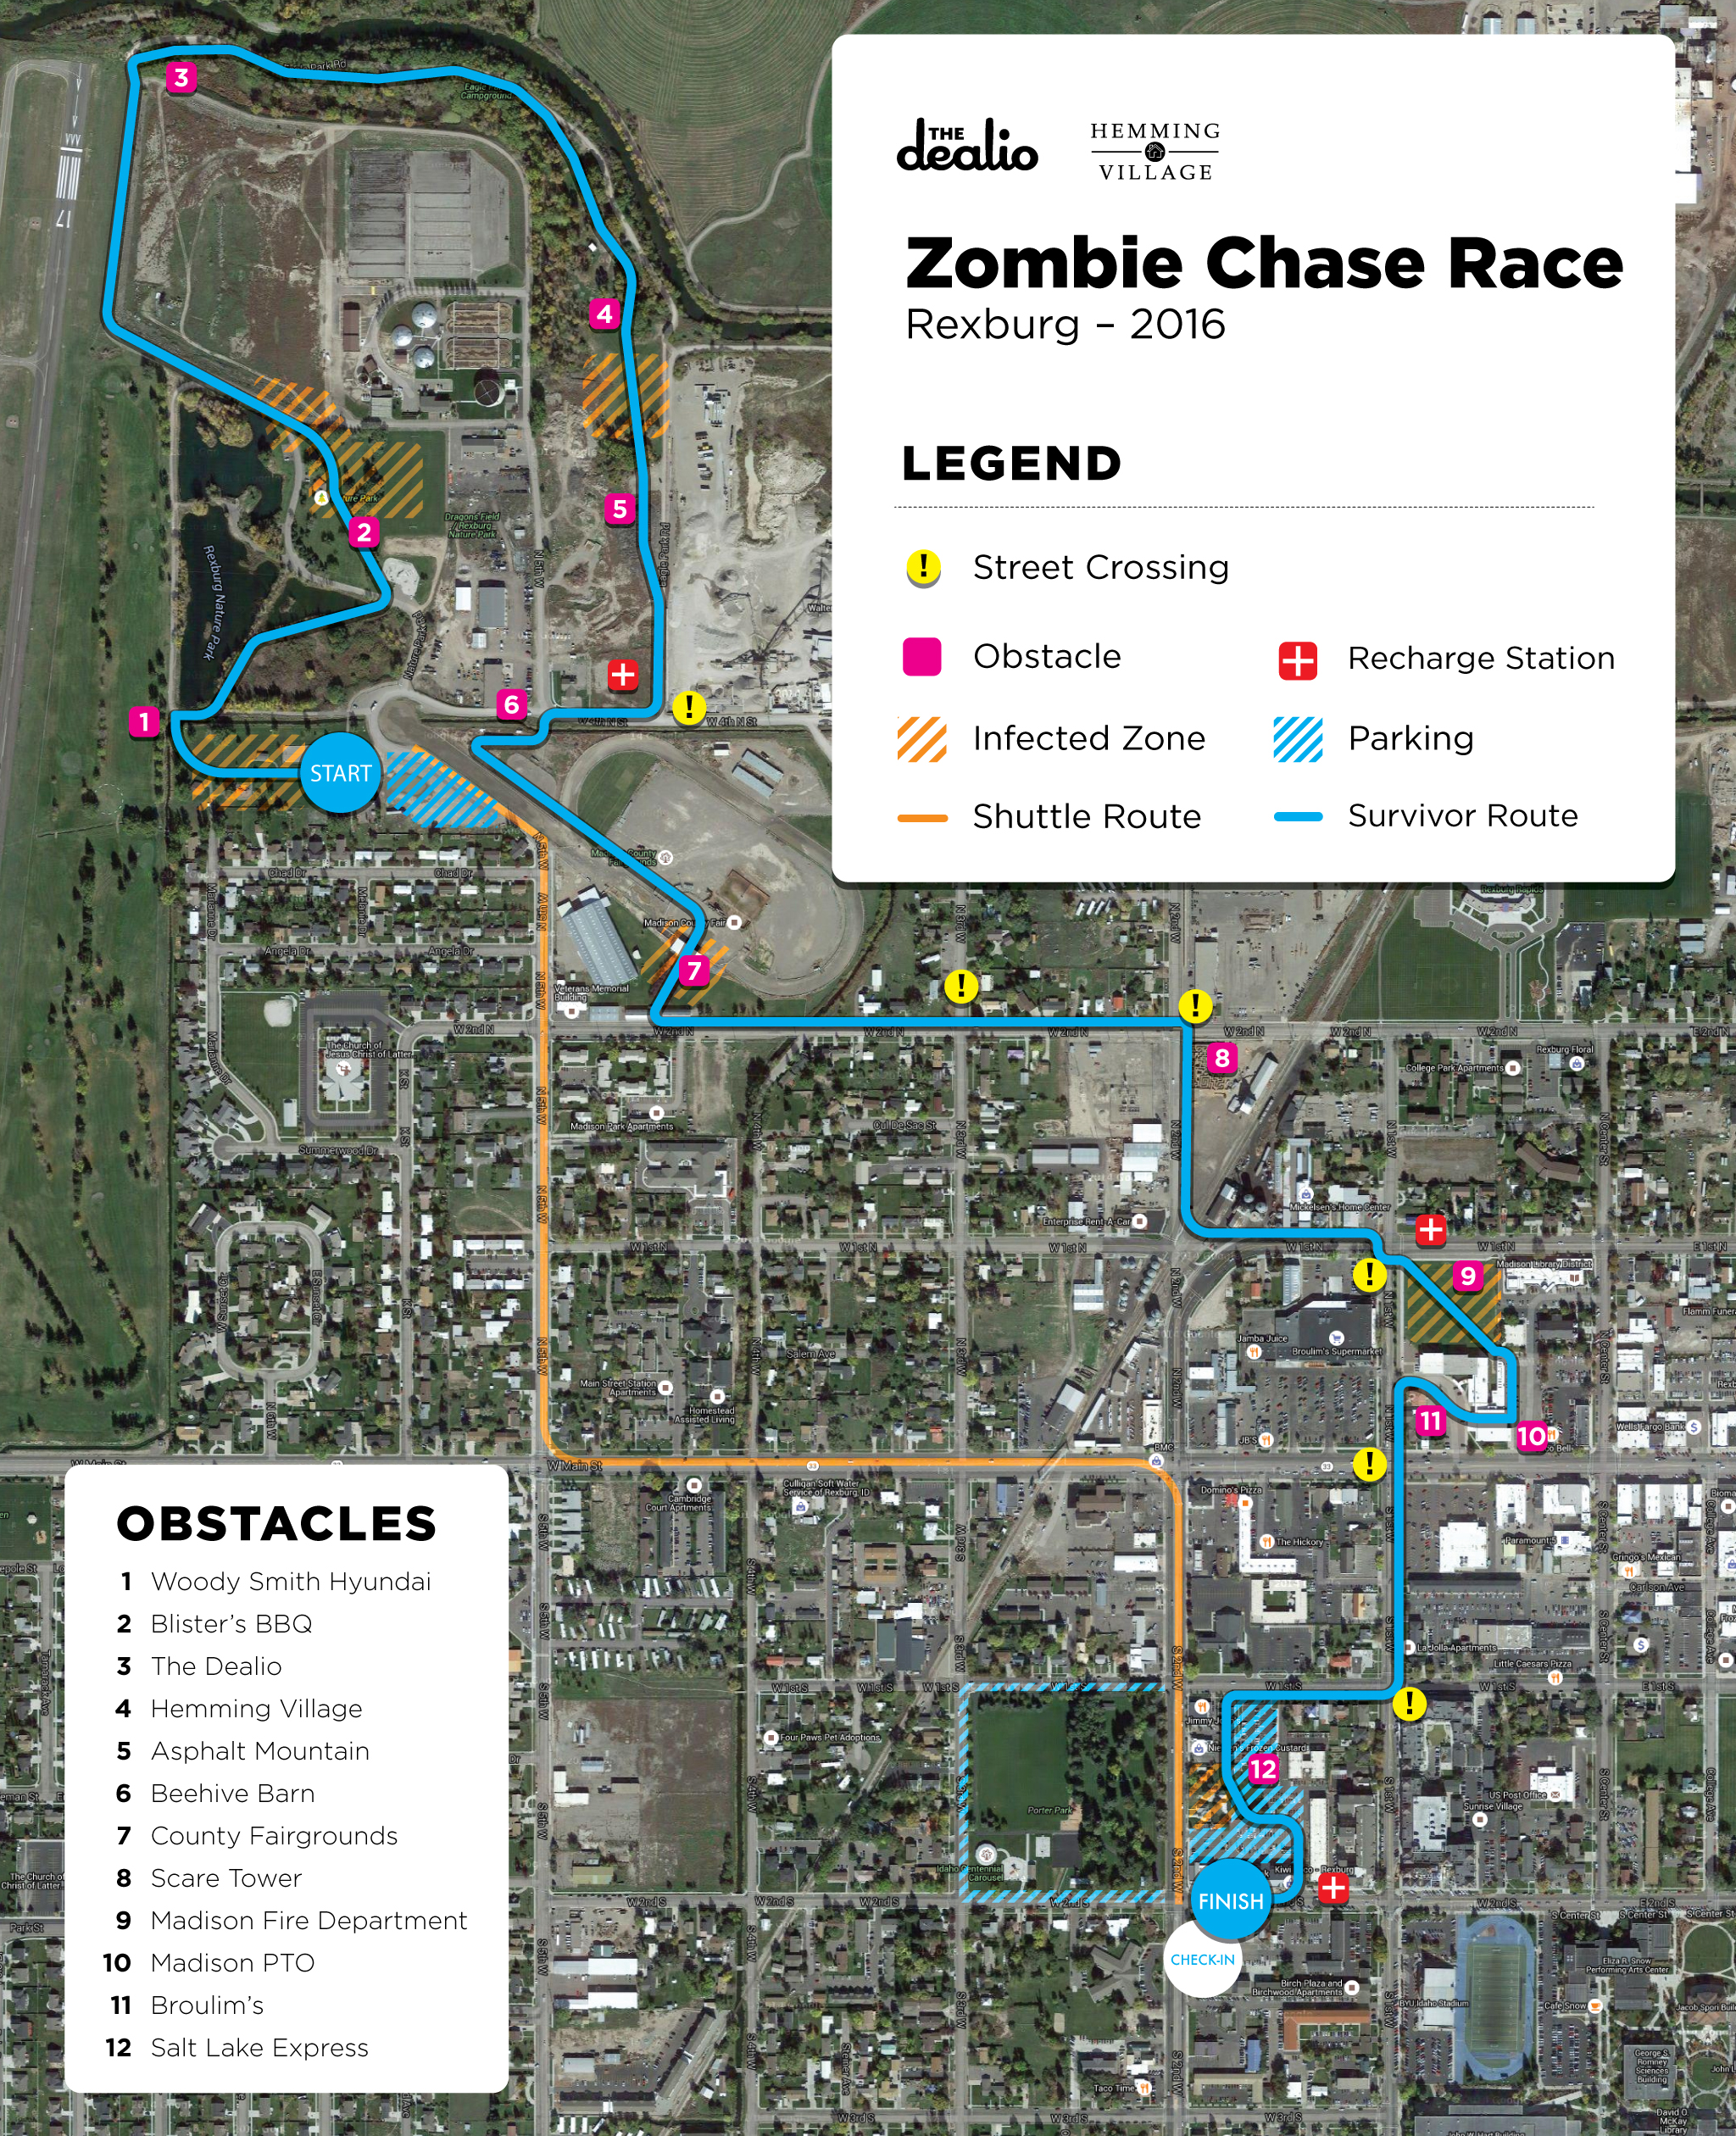 Course map for Zombie Chase Race 2016